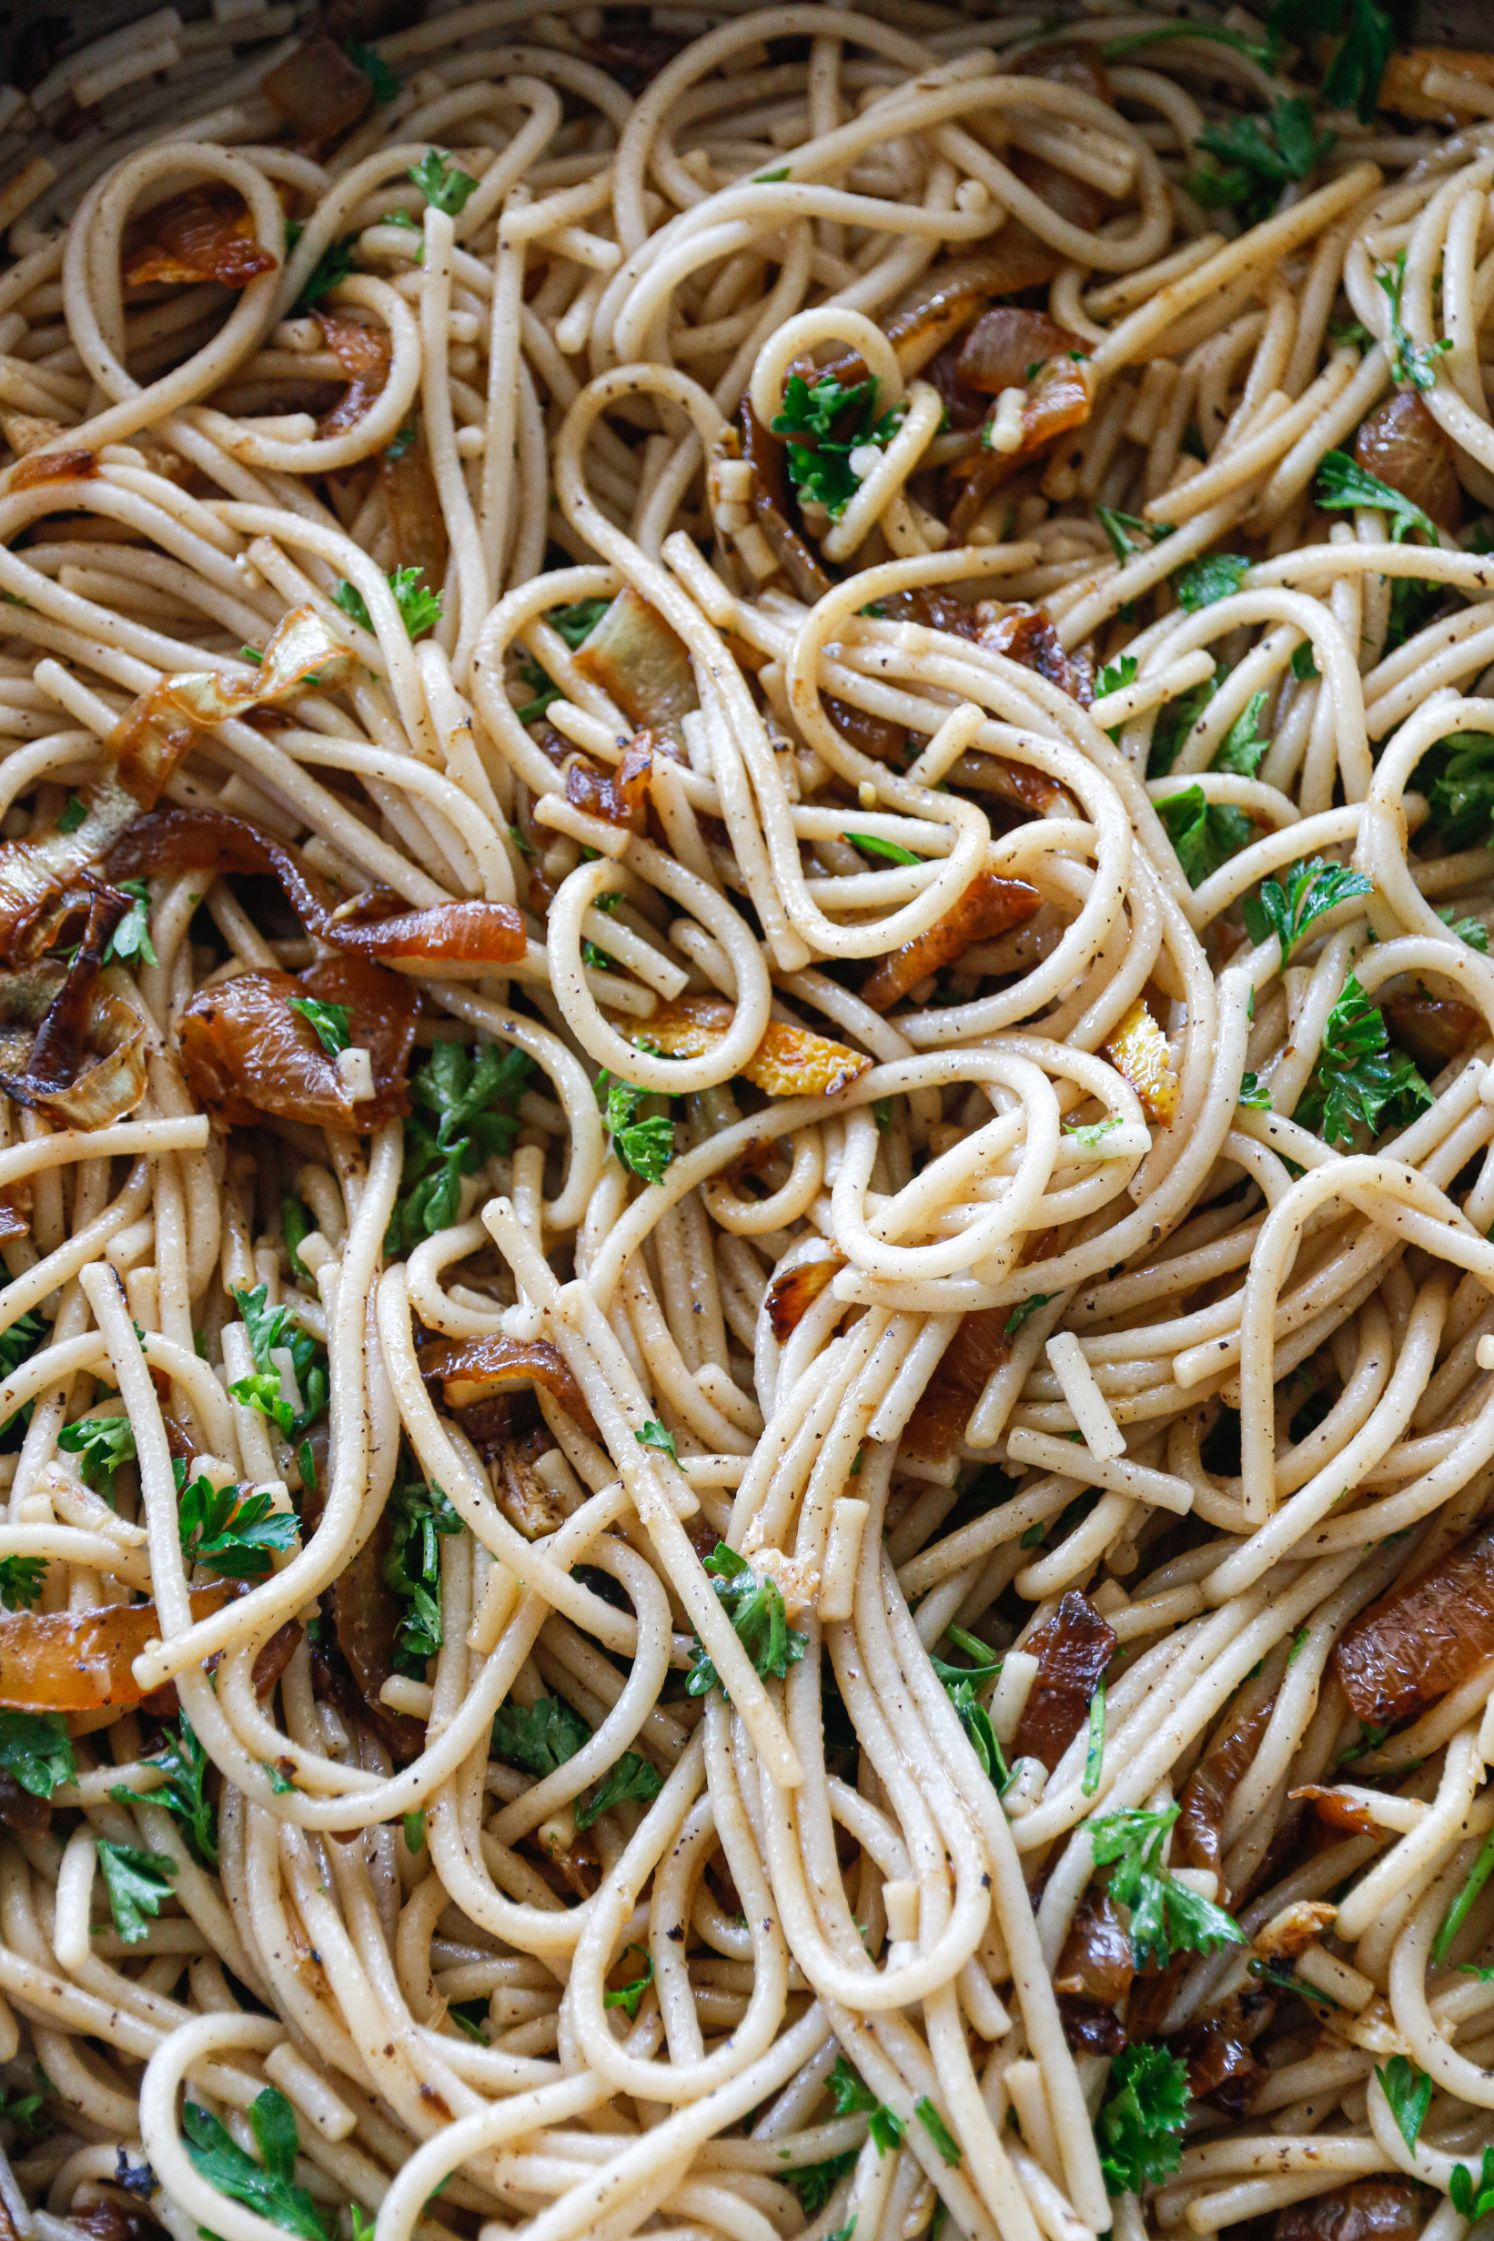 GARLIC PASTA with CARAMELIZED ONION AND LEMON PEELS